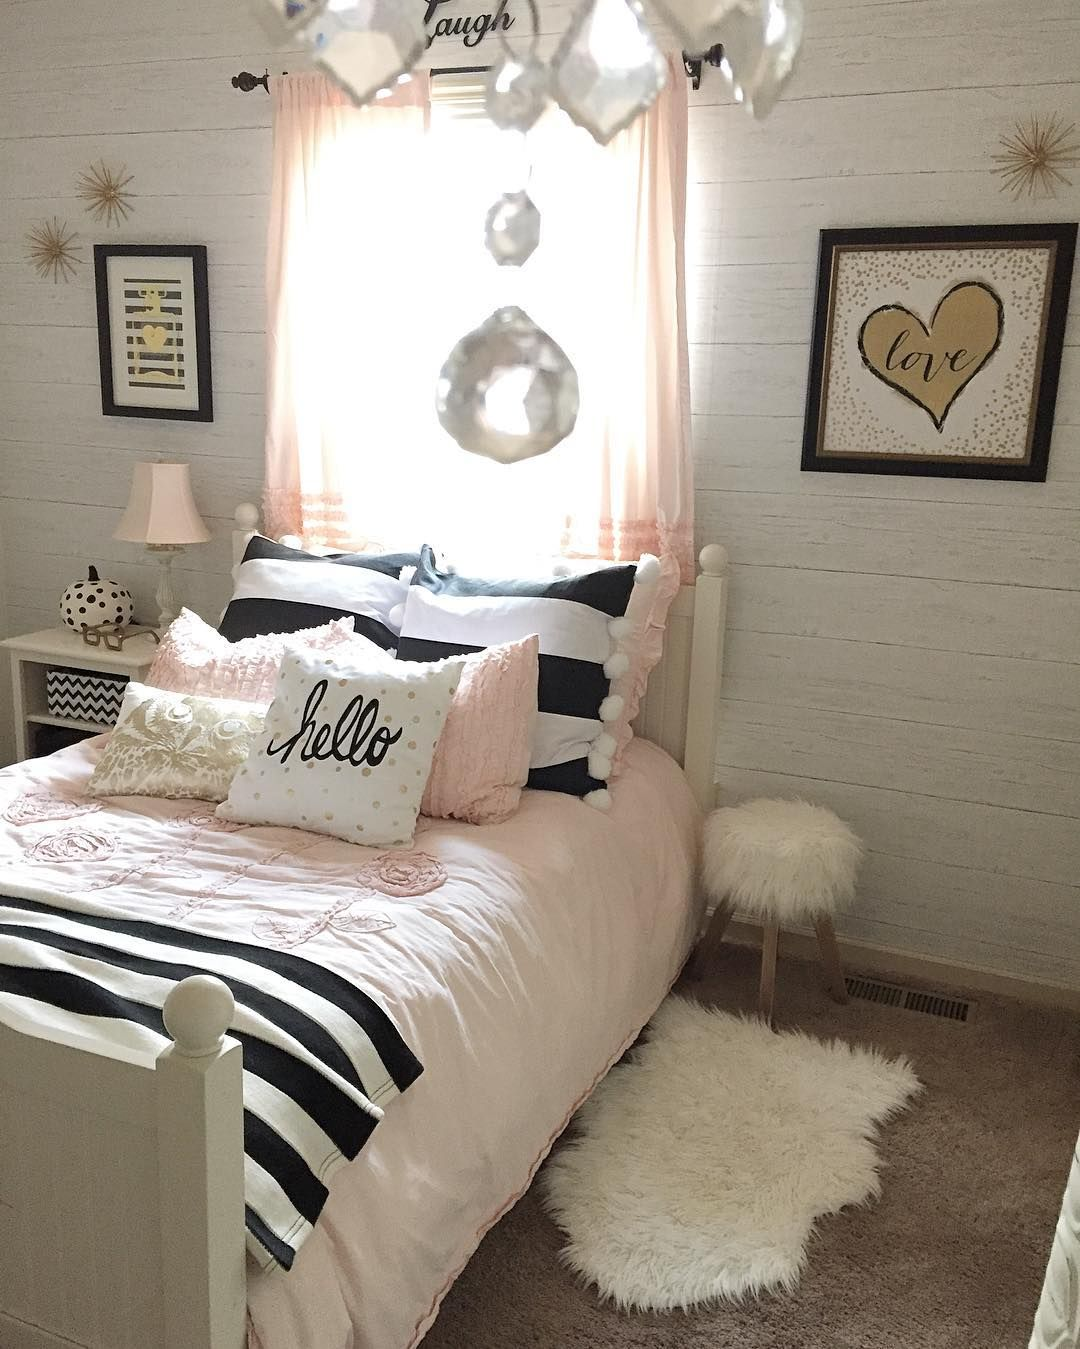 12 Fun Girlu0027s Bedroom Decor Ideas   Cute Room Decorating For Girls Tags: A Girl  Room Decoration, A Baby Girl Room Decor, Girl Room Themes For Tweens, ...